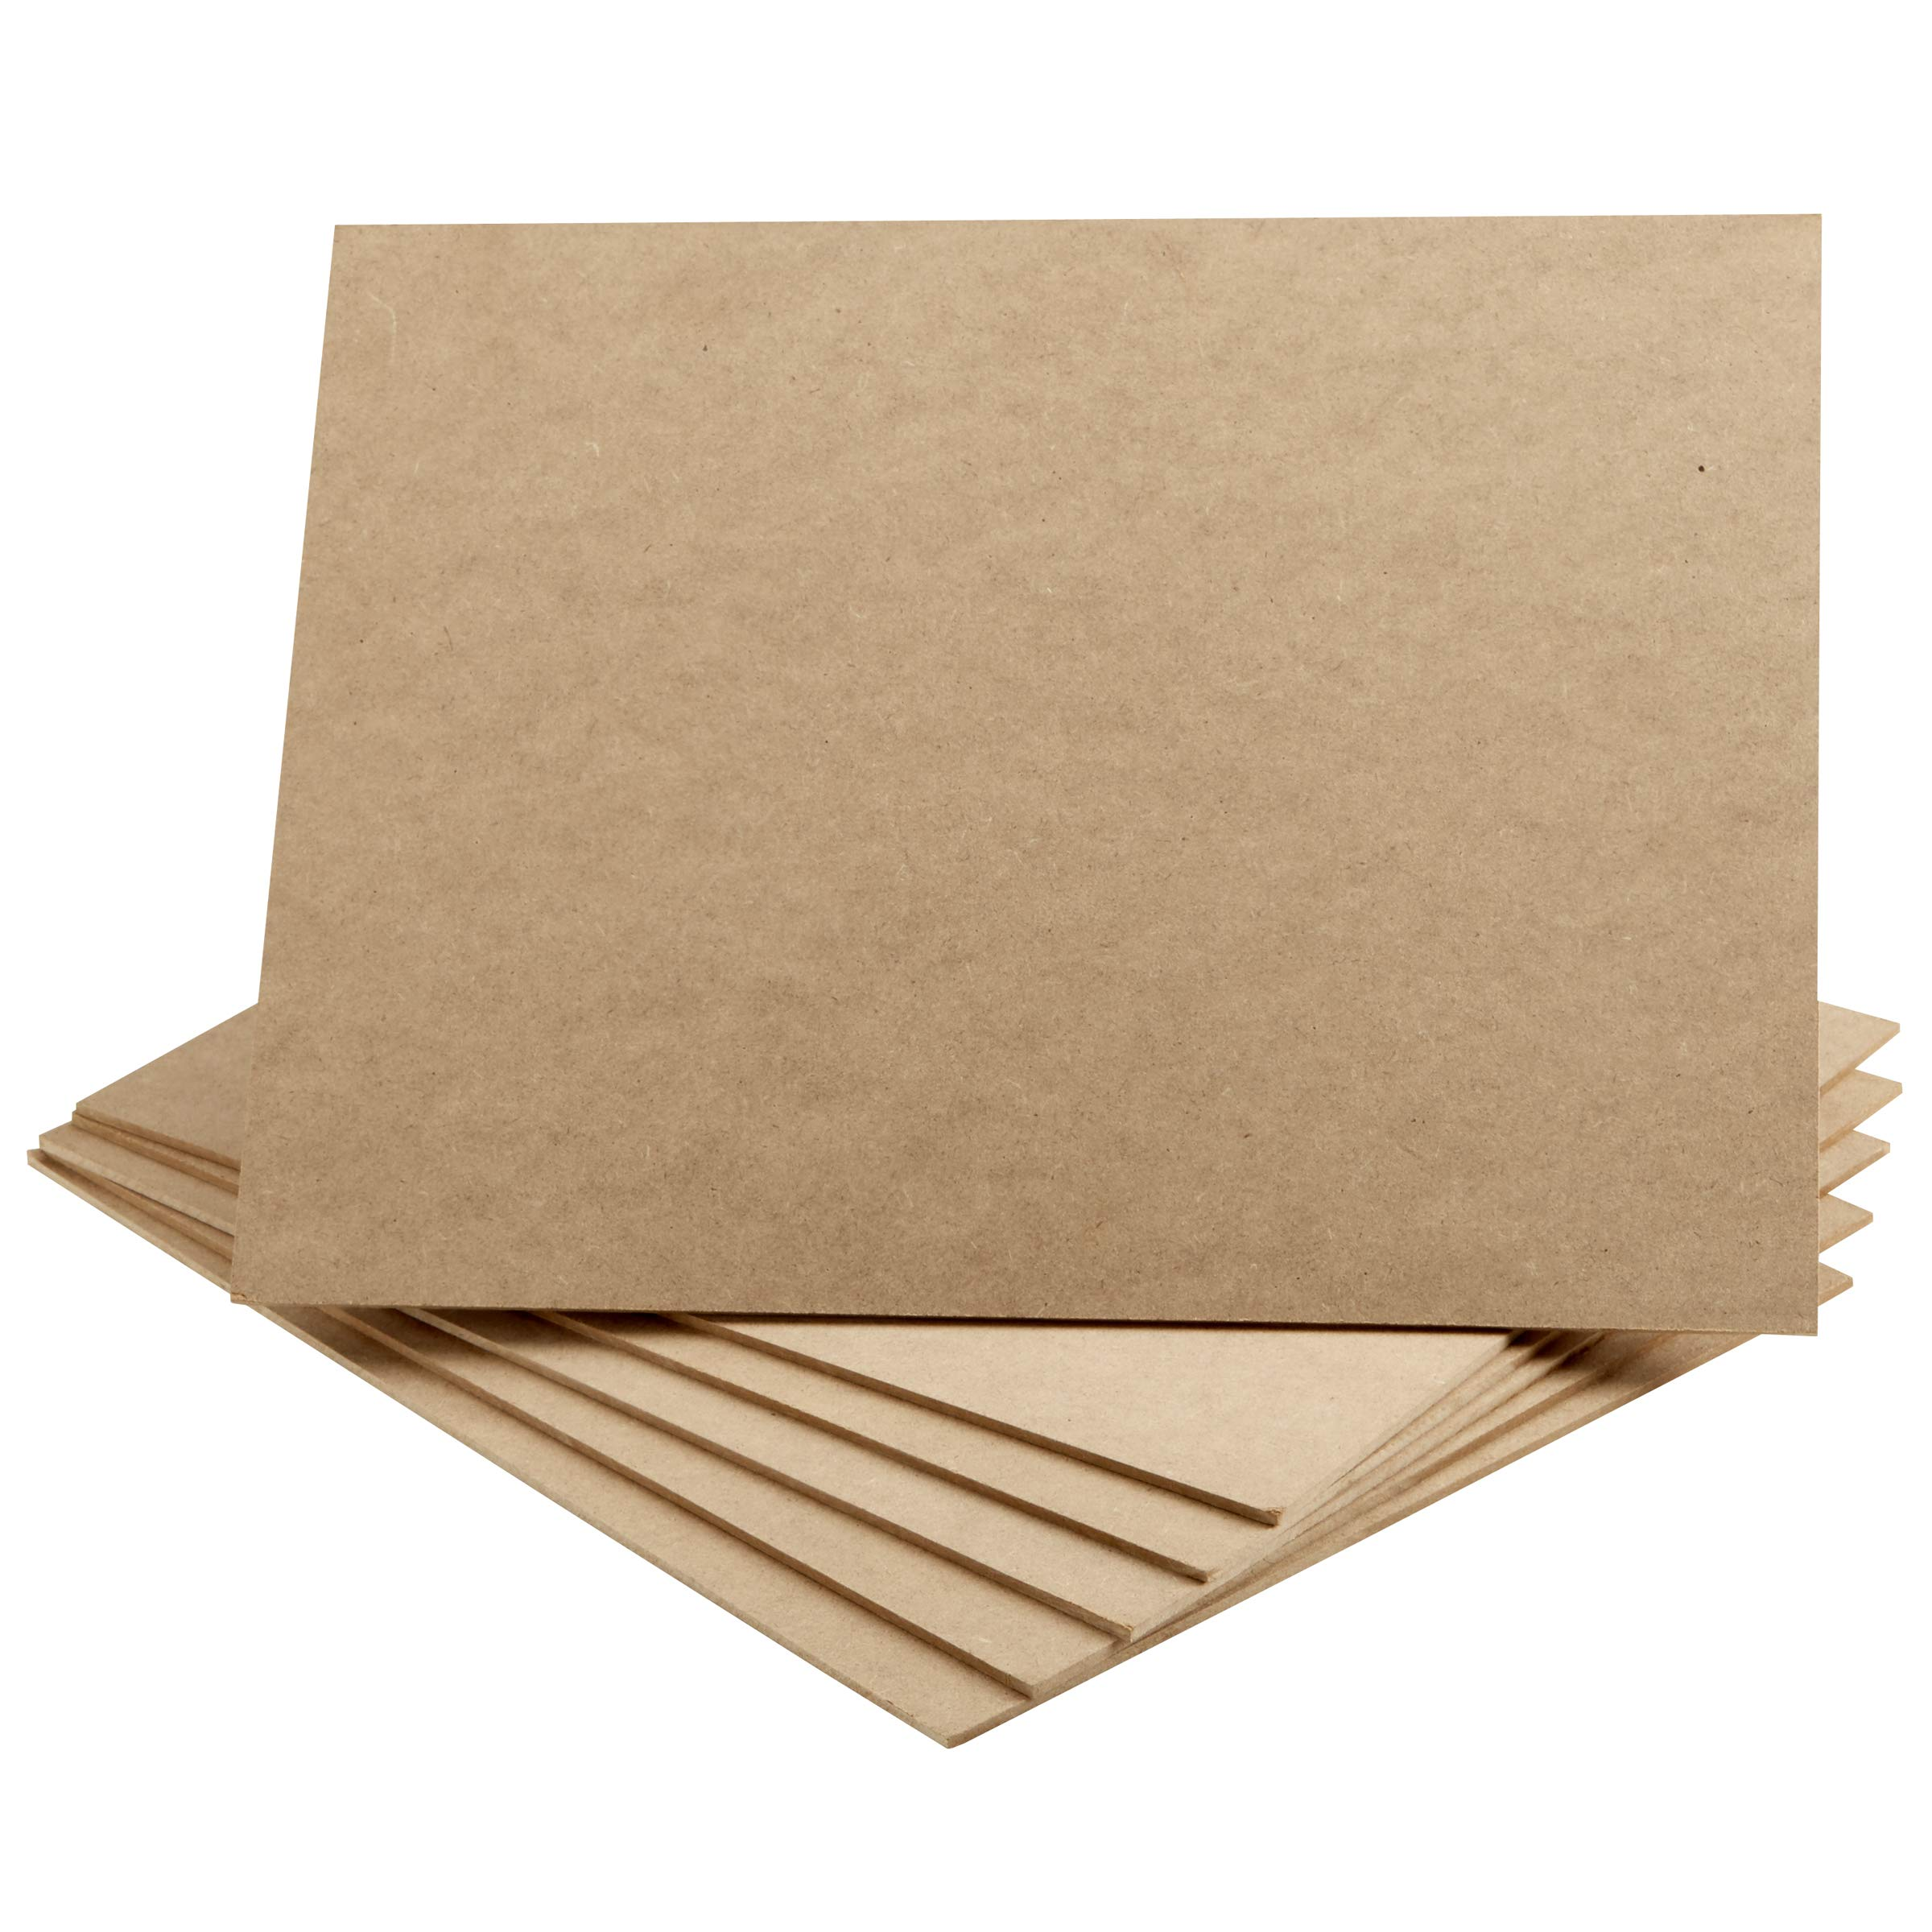 Artlicious - 9x12 Hardboard 6 Pack - Great Alternative to Canvas Panel Boards by Artlicious